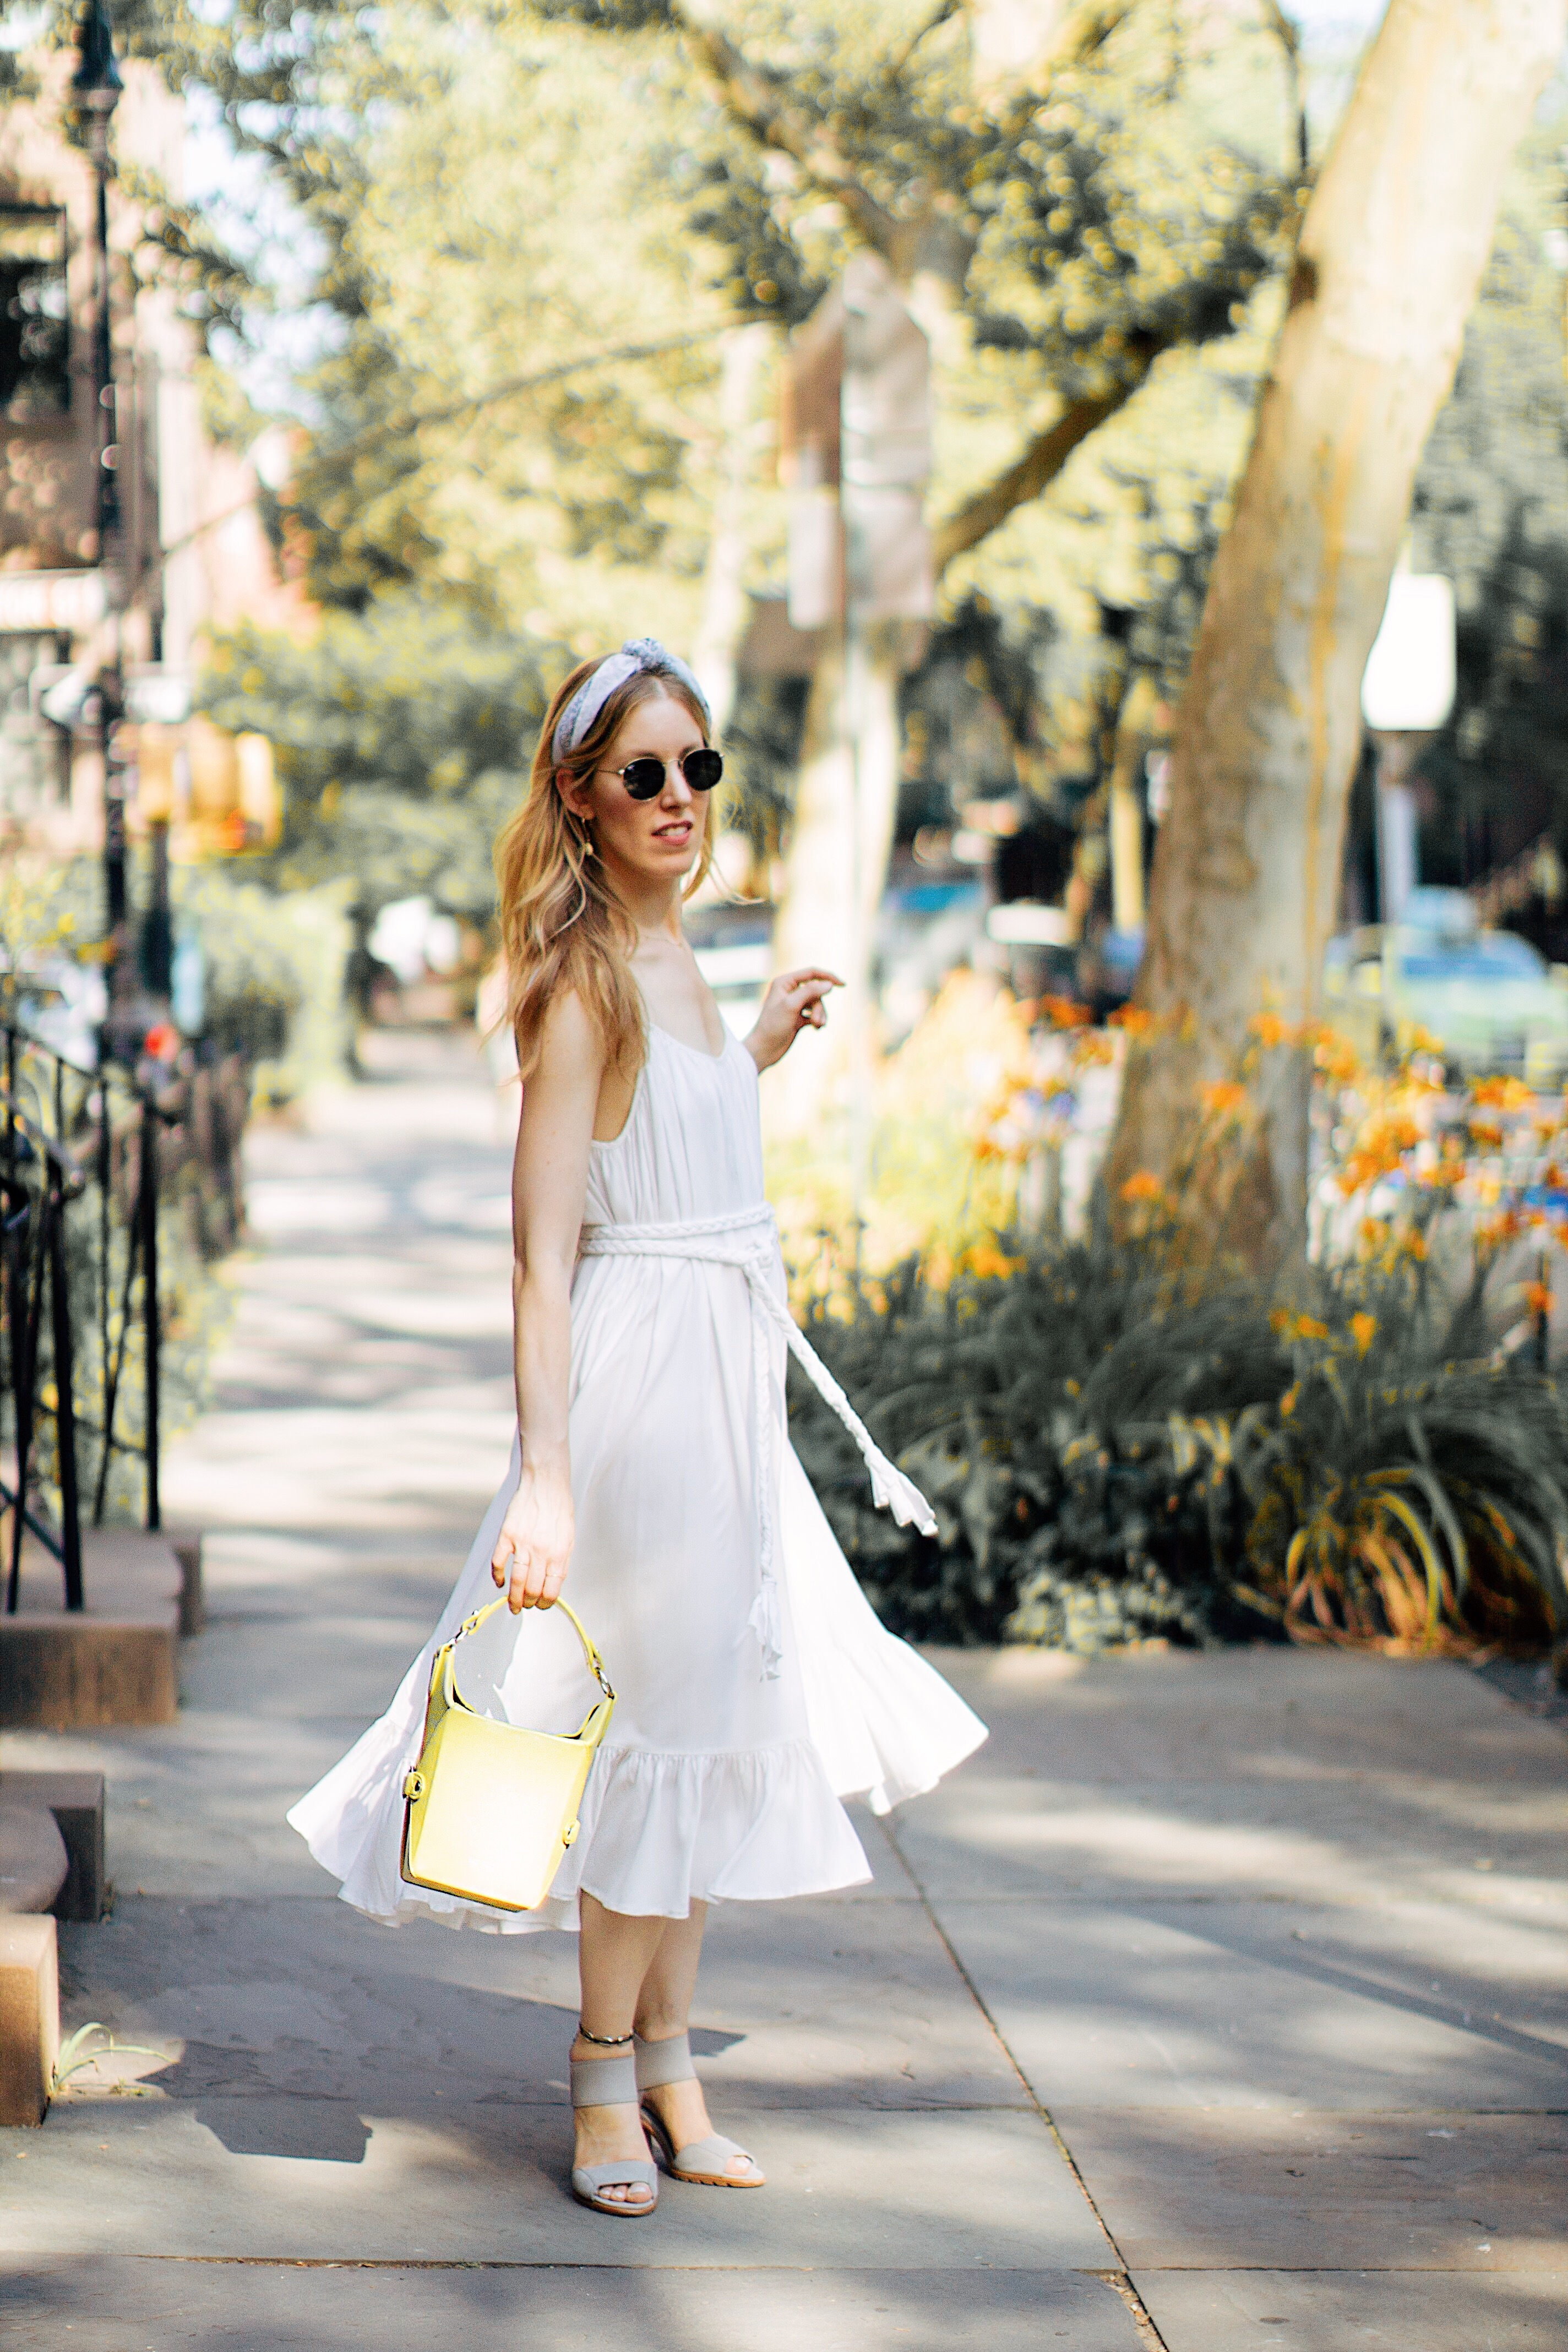 white dress and headband for summer